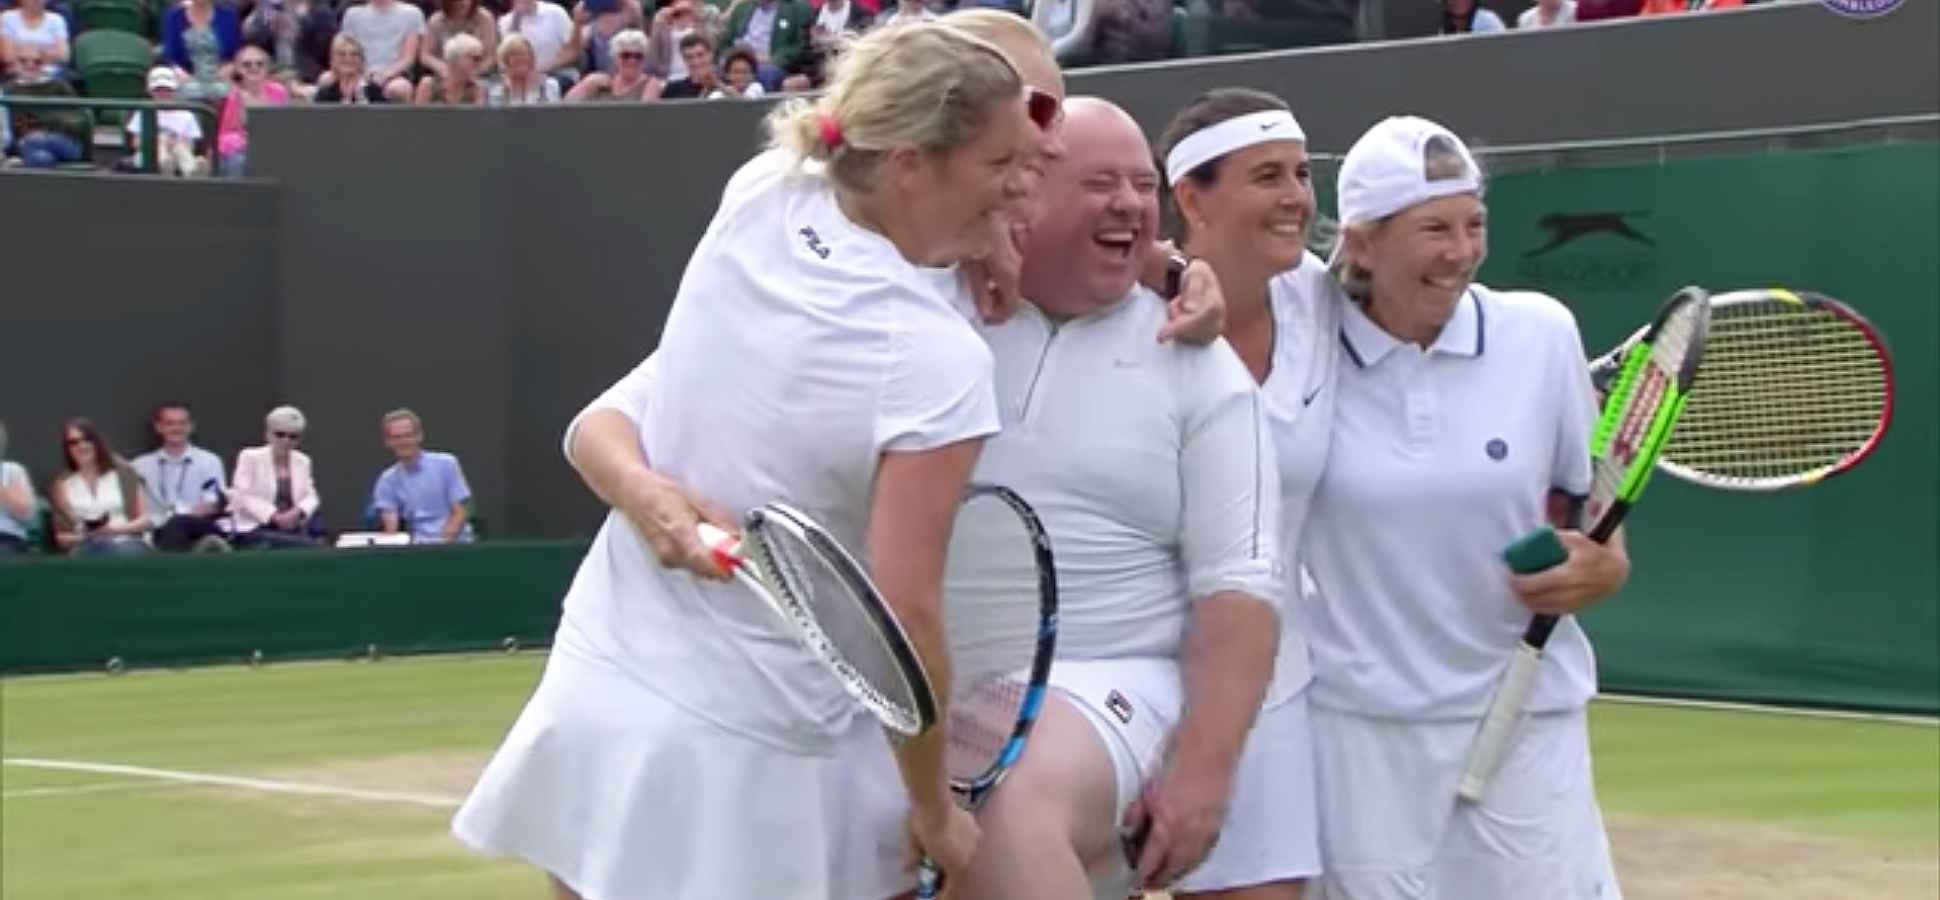 Kim Clijsters Broke the Rules at Wimbledon Here s What We Can